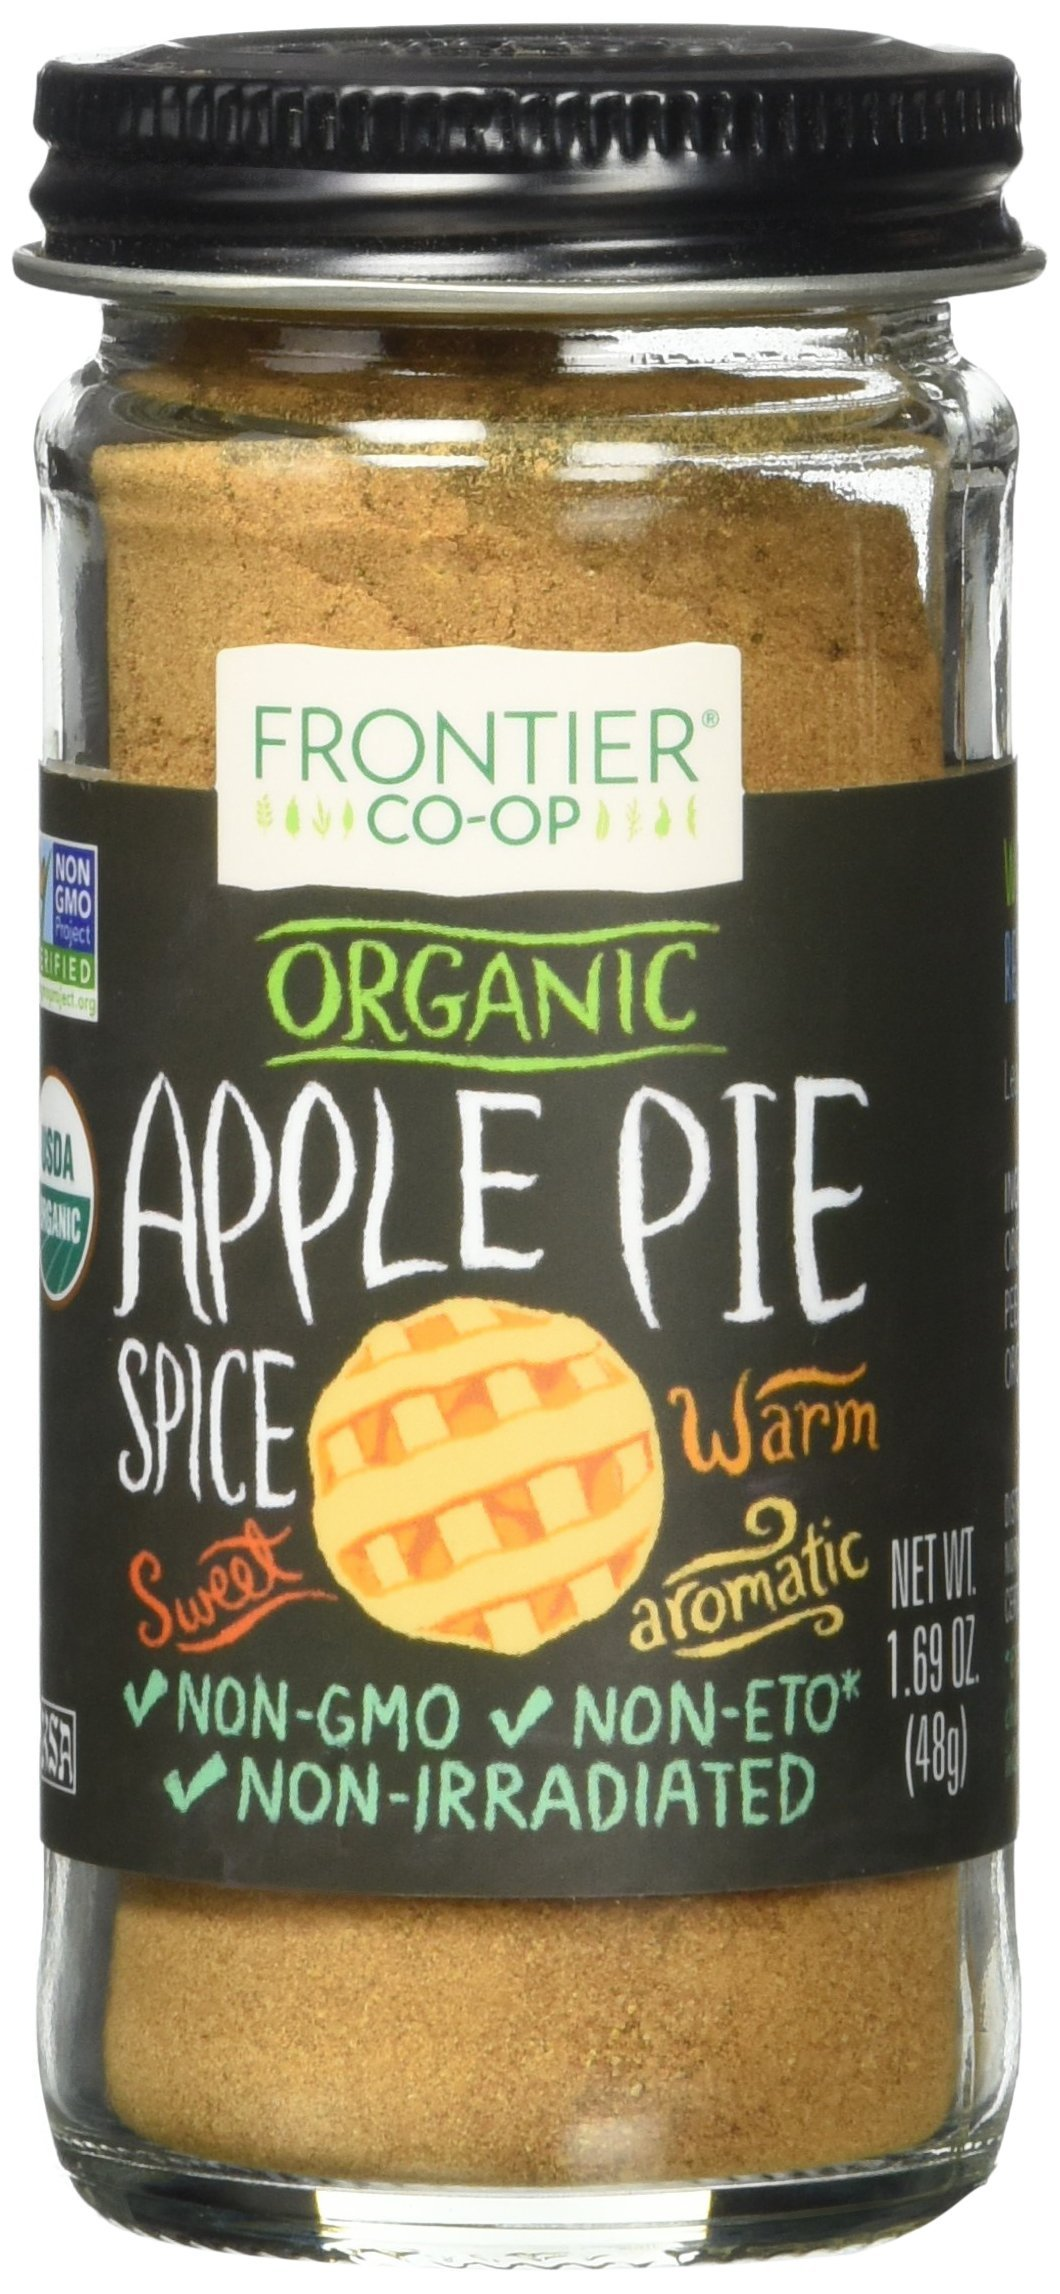 Frontier Natural Products Co-Op Organic Apple Pie Spice Salt-Free Blend 1.69 oz Jar